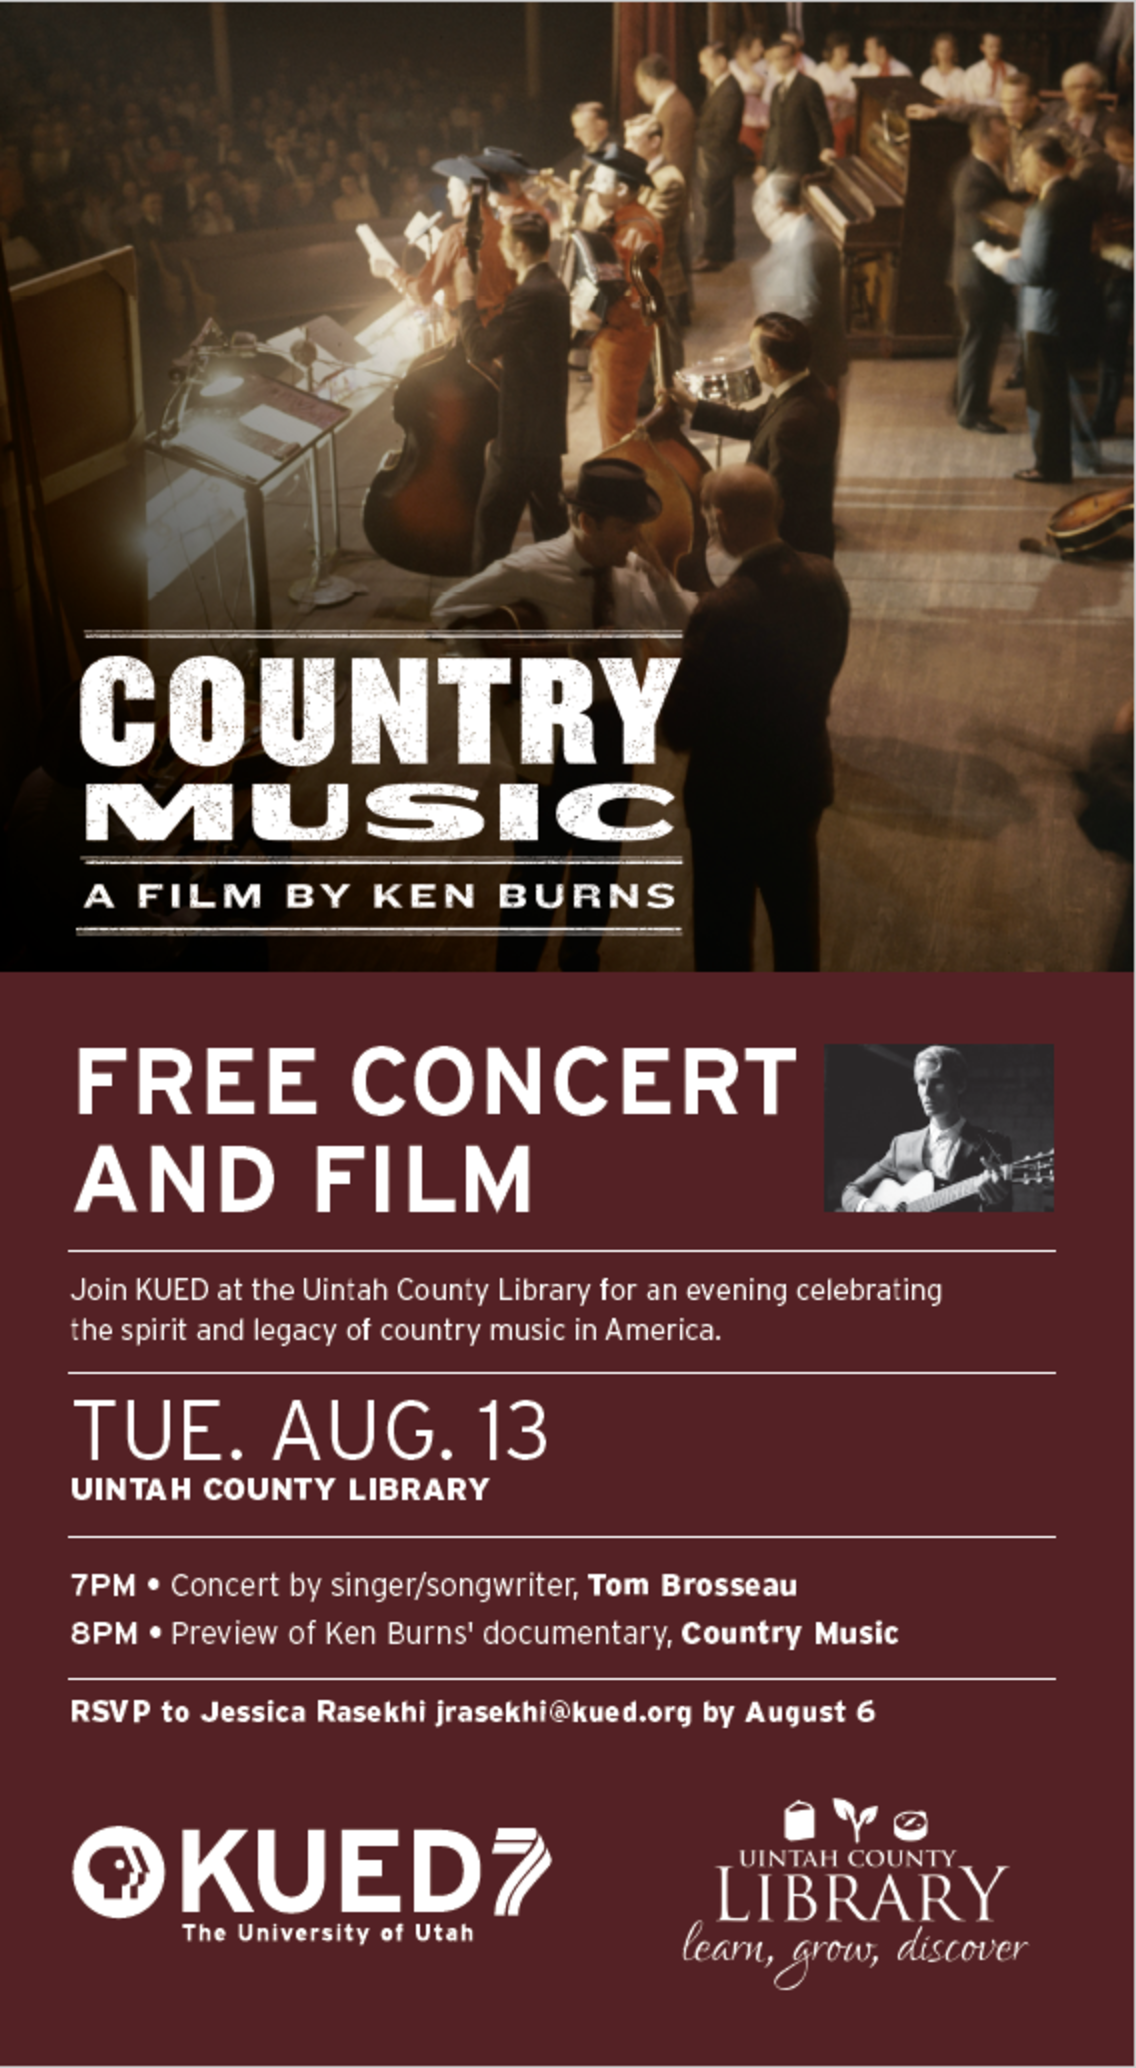 Tom Brosseau to perform at the premiere of the new Ken Burns